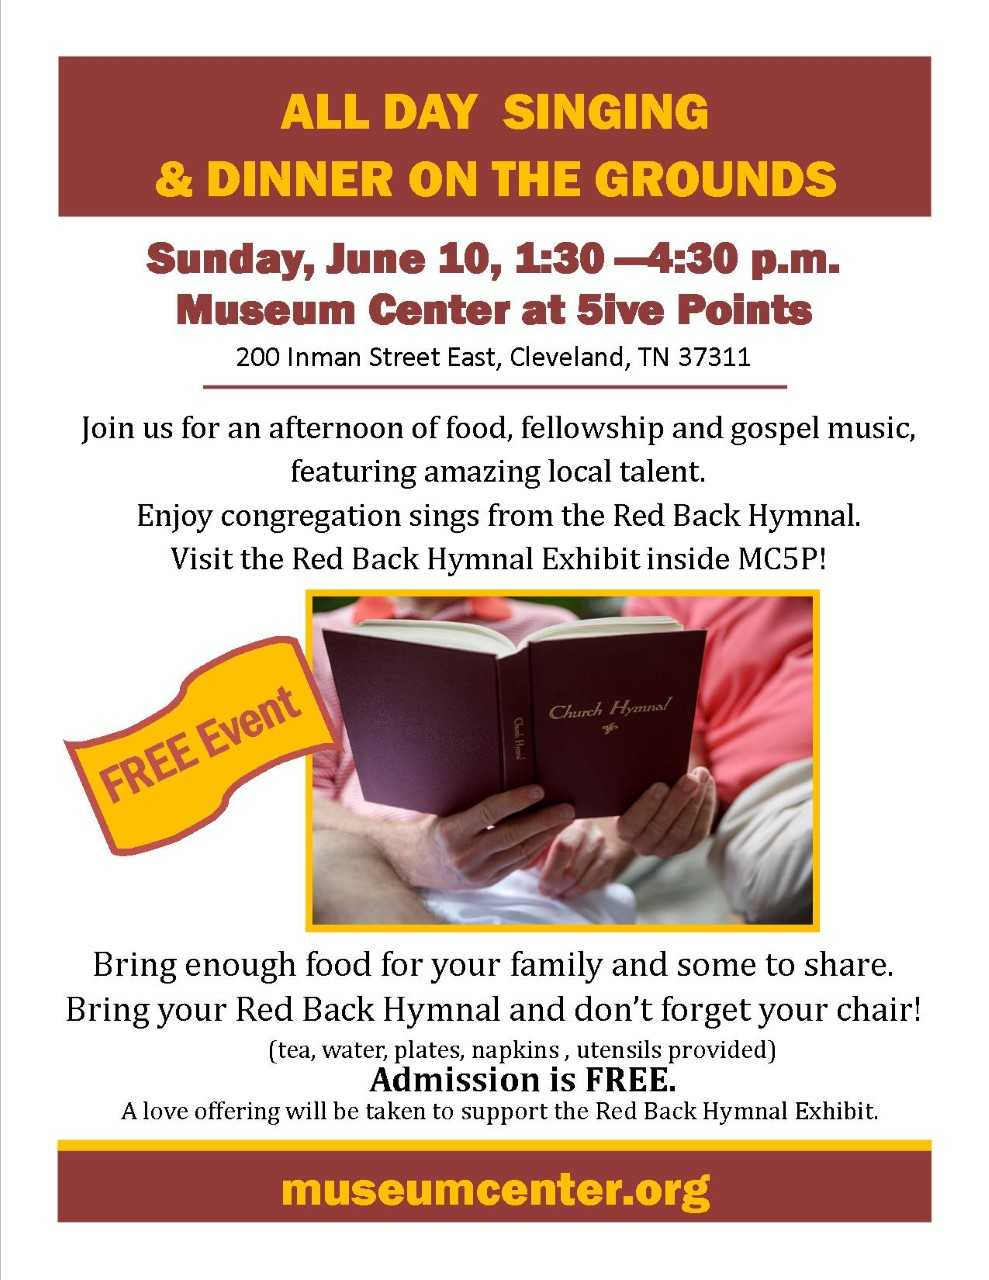 All Day Singing & Dinner on the Grounds - Visit Cleveland TN